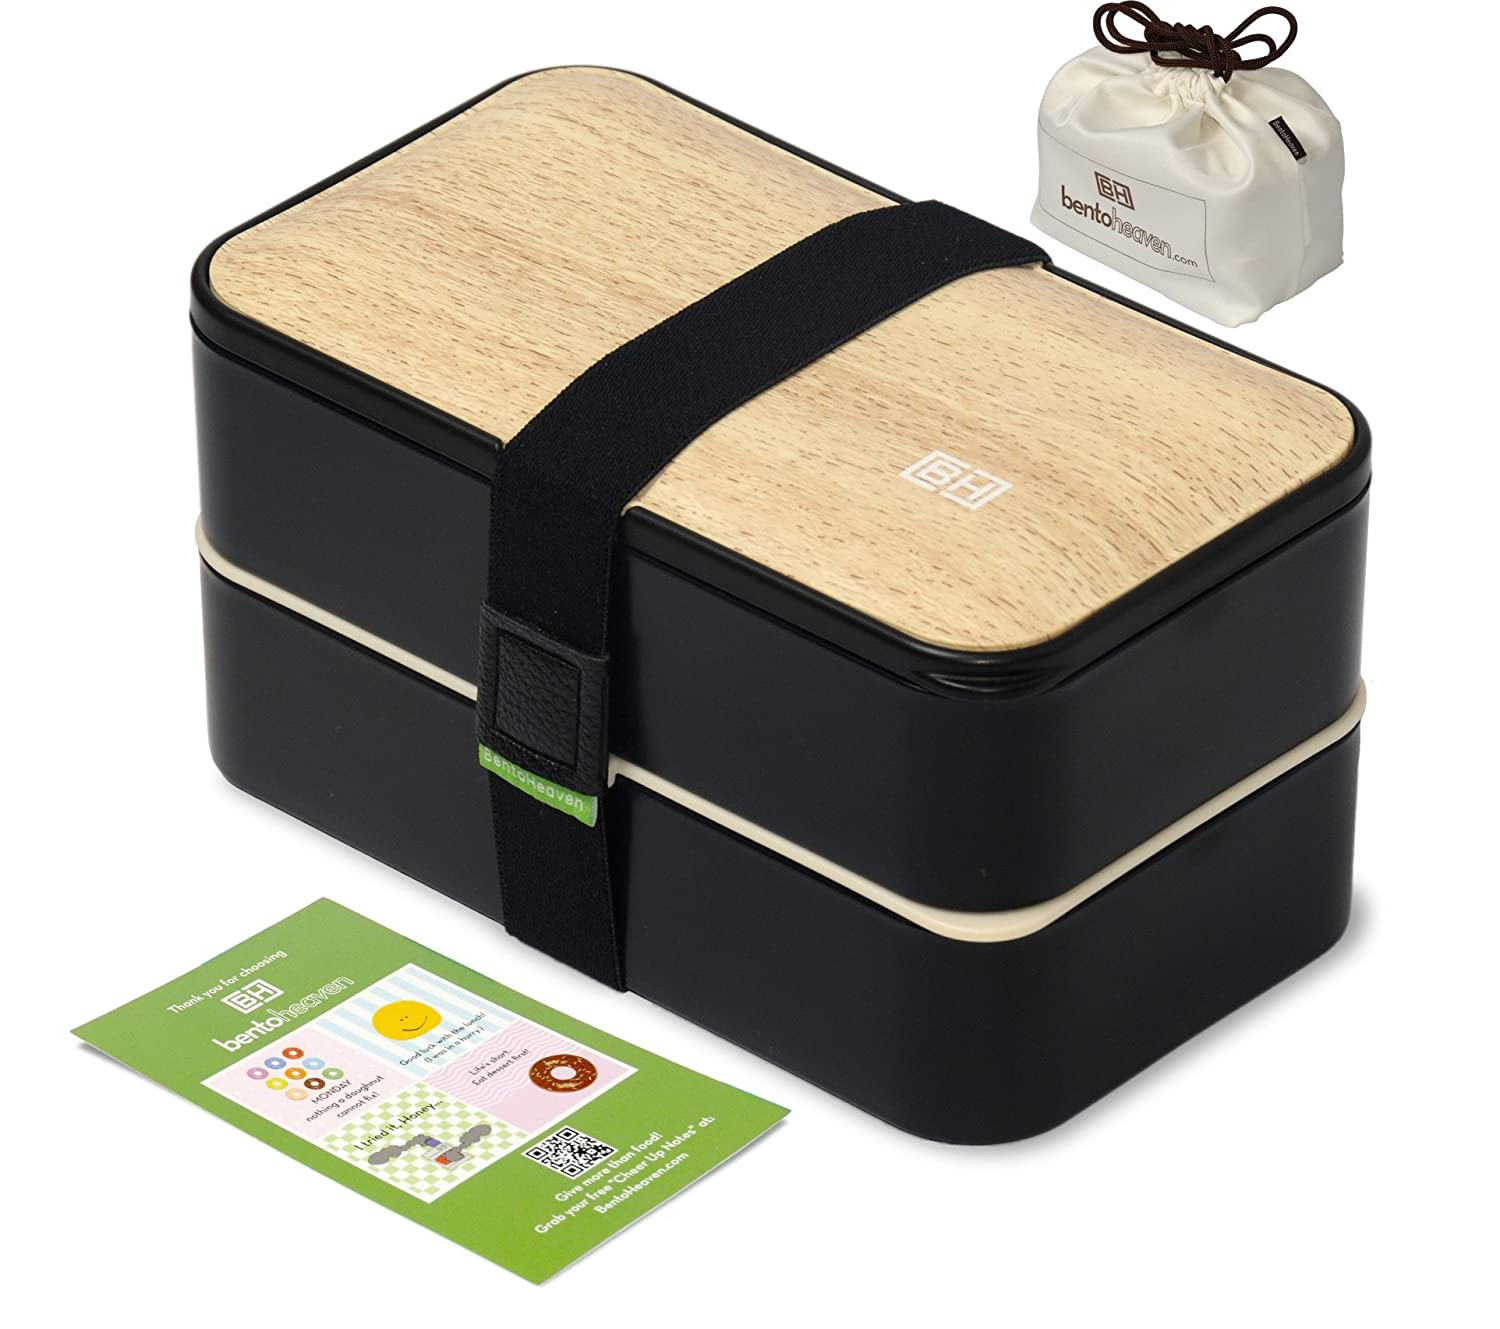 Original BentoHeaven Bento Box Bundle with FREE Lunch Bag, Divider, Utensils, Chopstick & Fun Lunch Box Notes - Leakproof Lunch Boxes - Bamboo Black BH-301BB